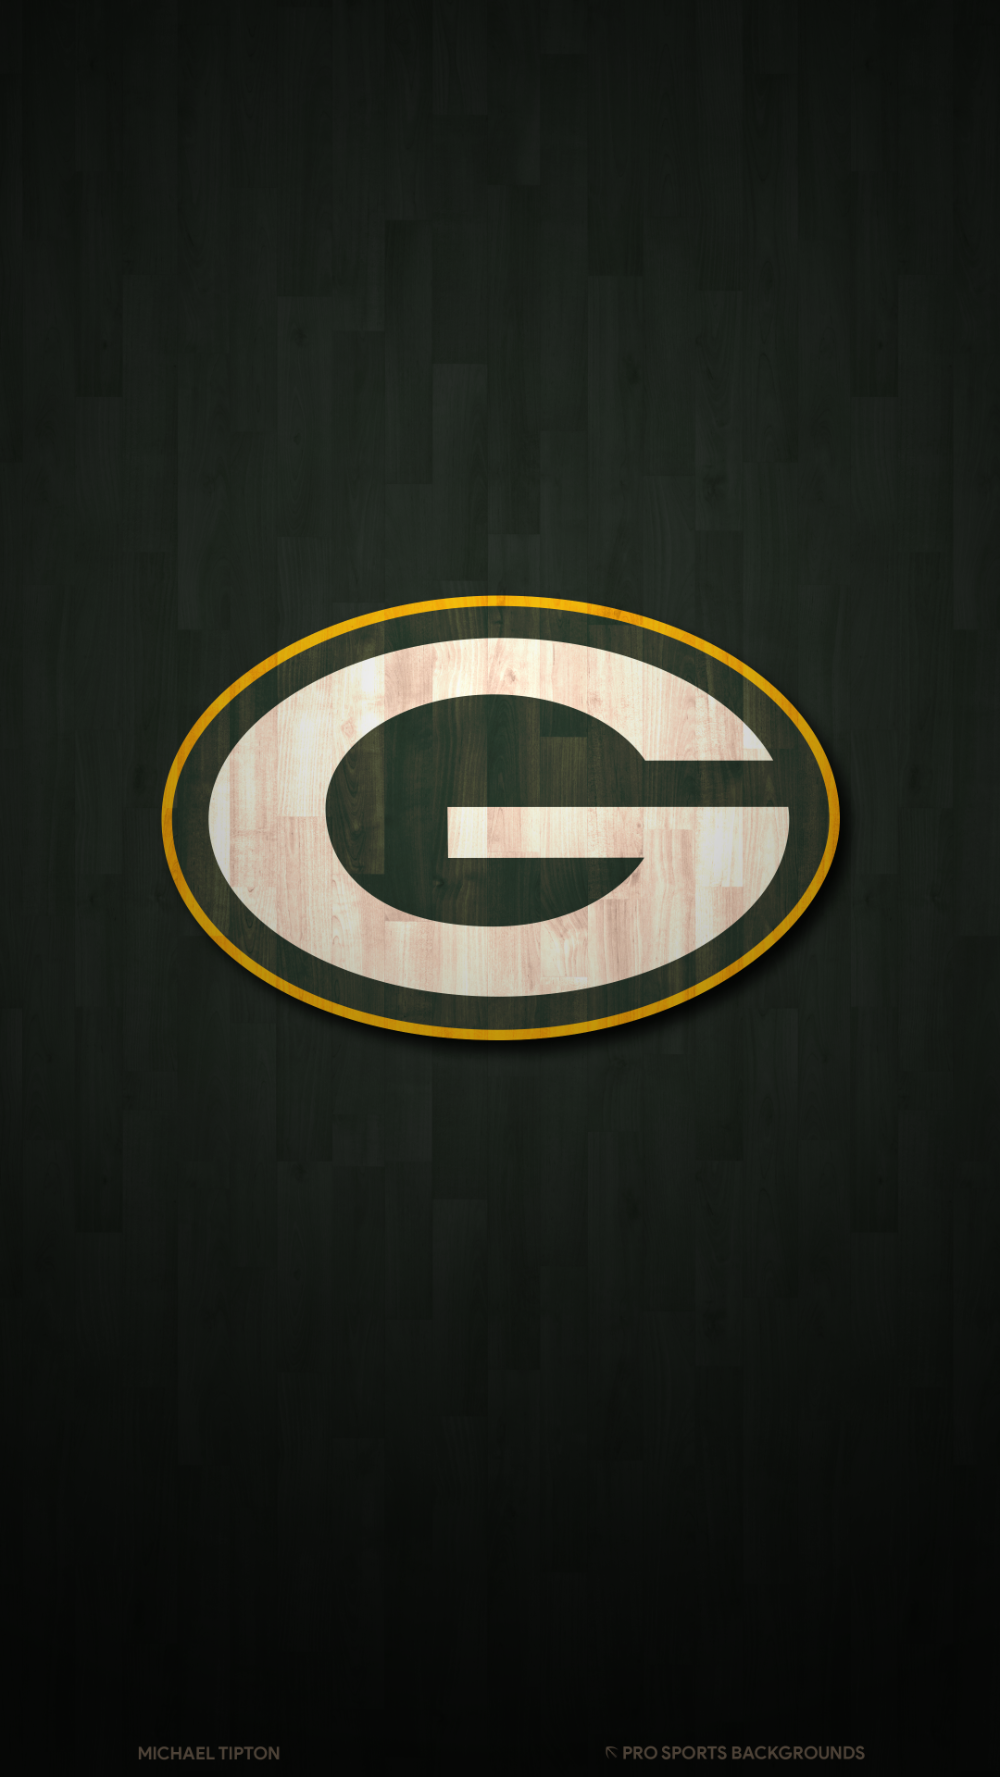 2019 Green Bay Packers Wallpapers Pro Sports Backgrounds Green Bay Packers Wallpaper Green Bay Packers Green Bay Packers Pictures